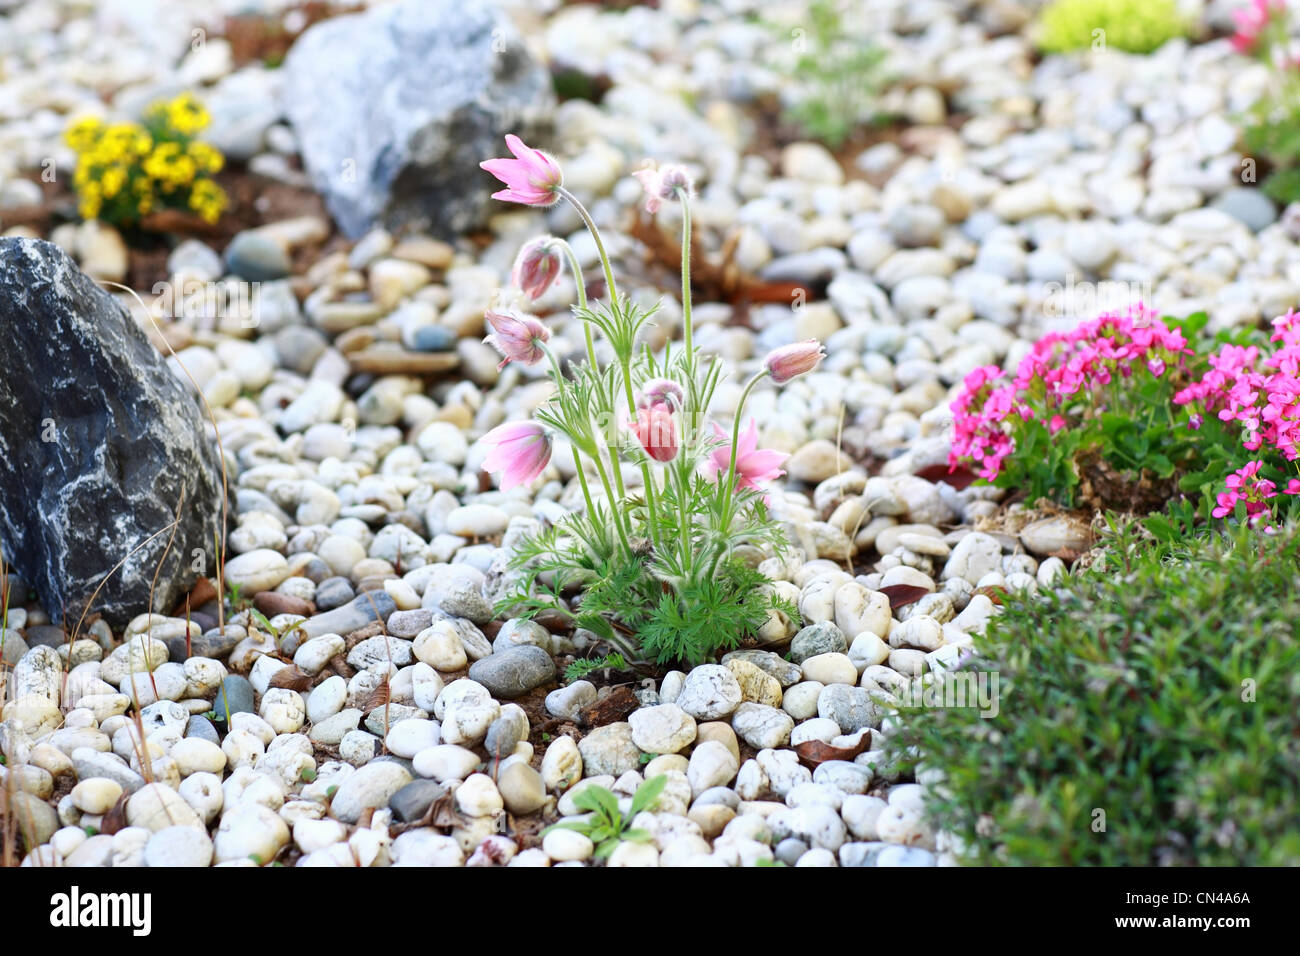 Small Rock Garden Constructed With Rocks And Alpine Plants